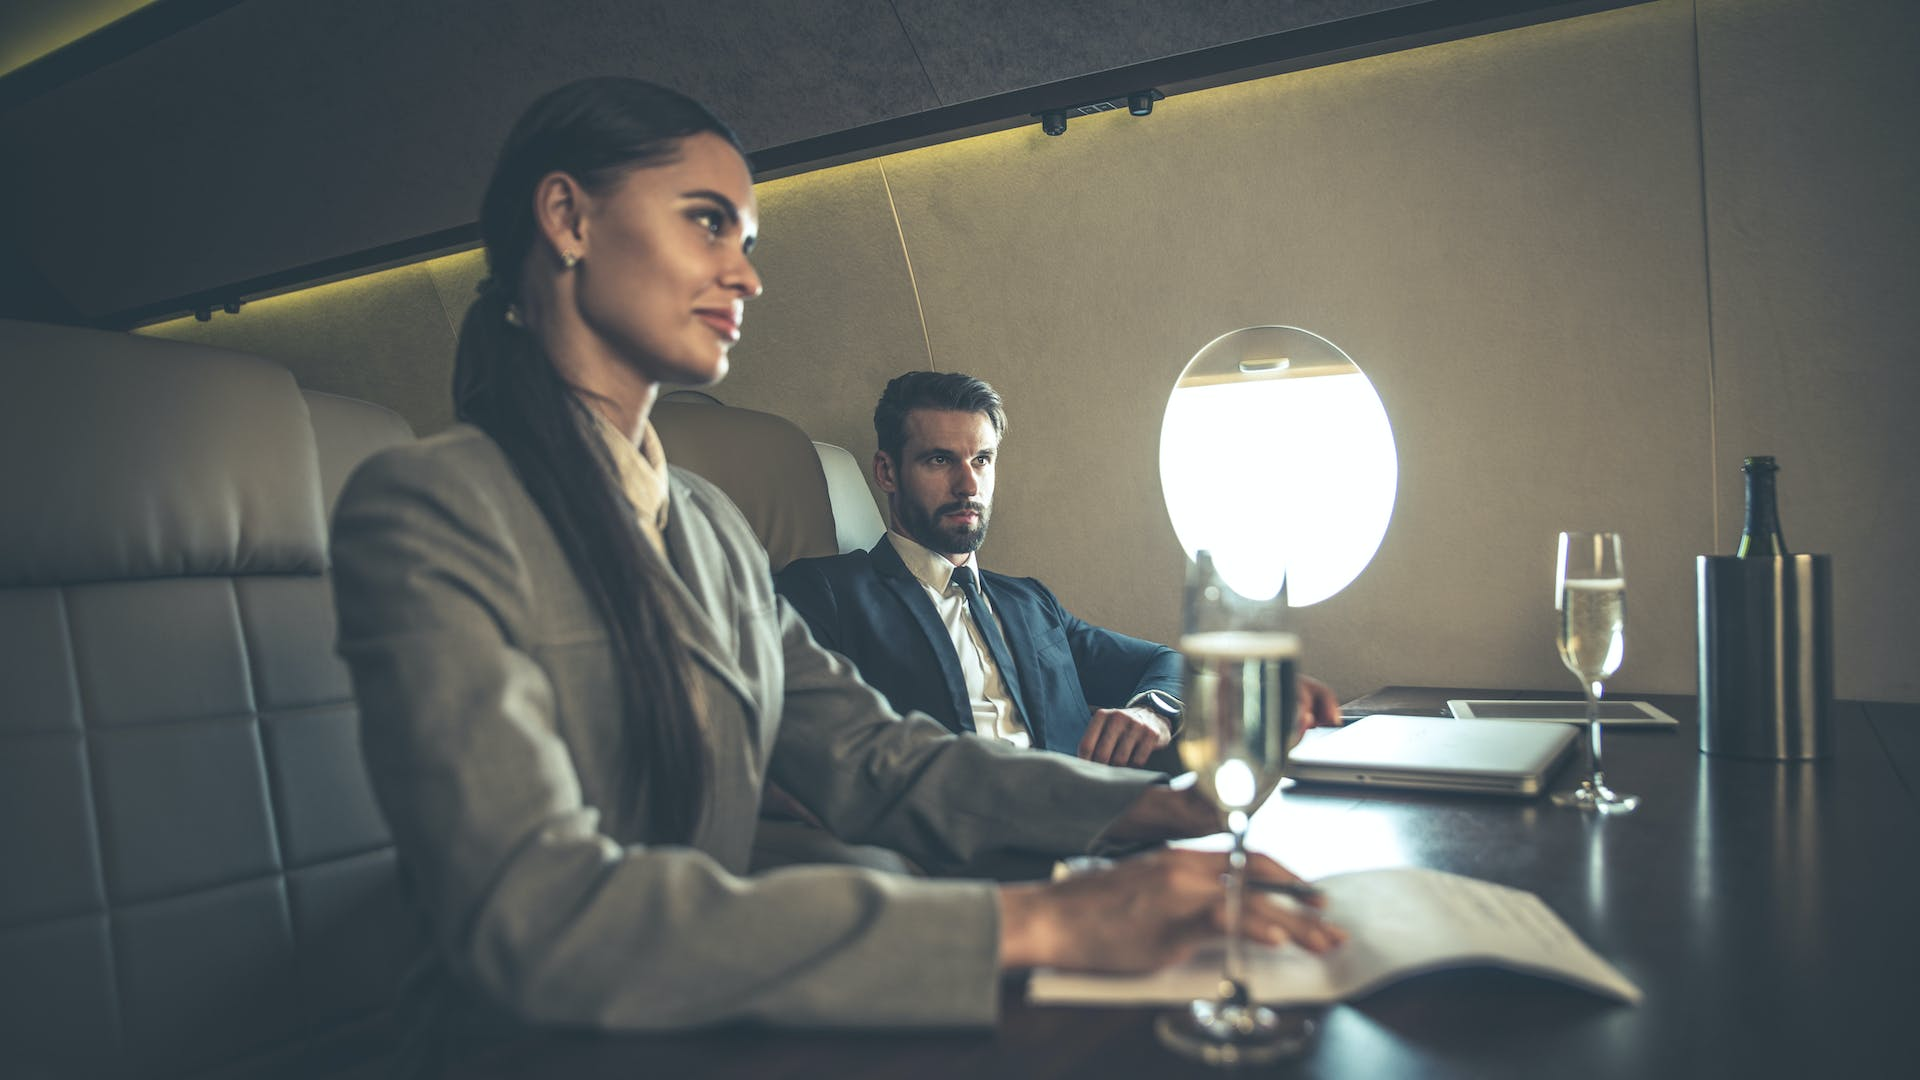 Conduct all matters concerning the government in a flying conference room aboard a private charter plane.